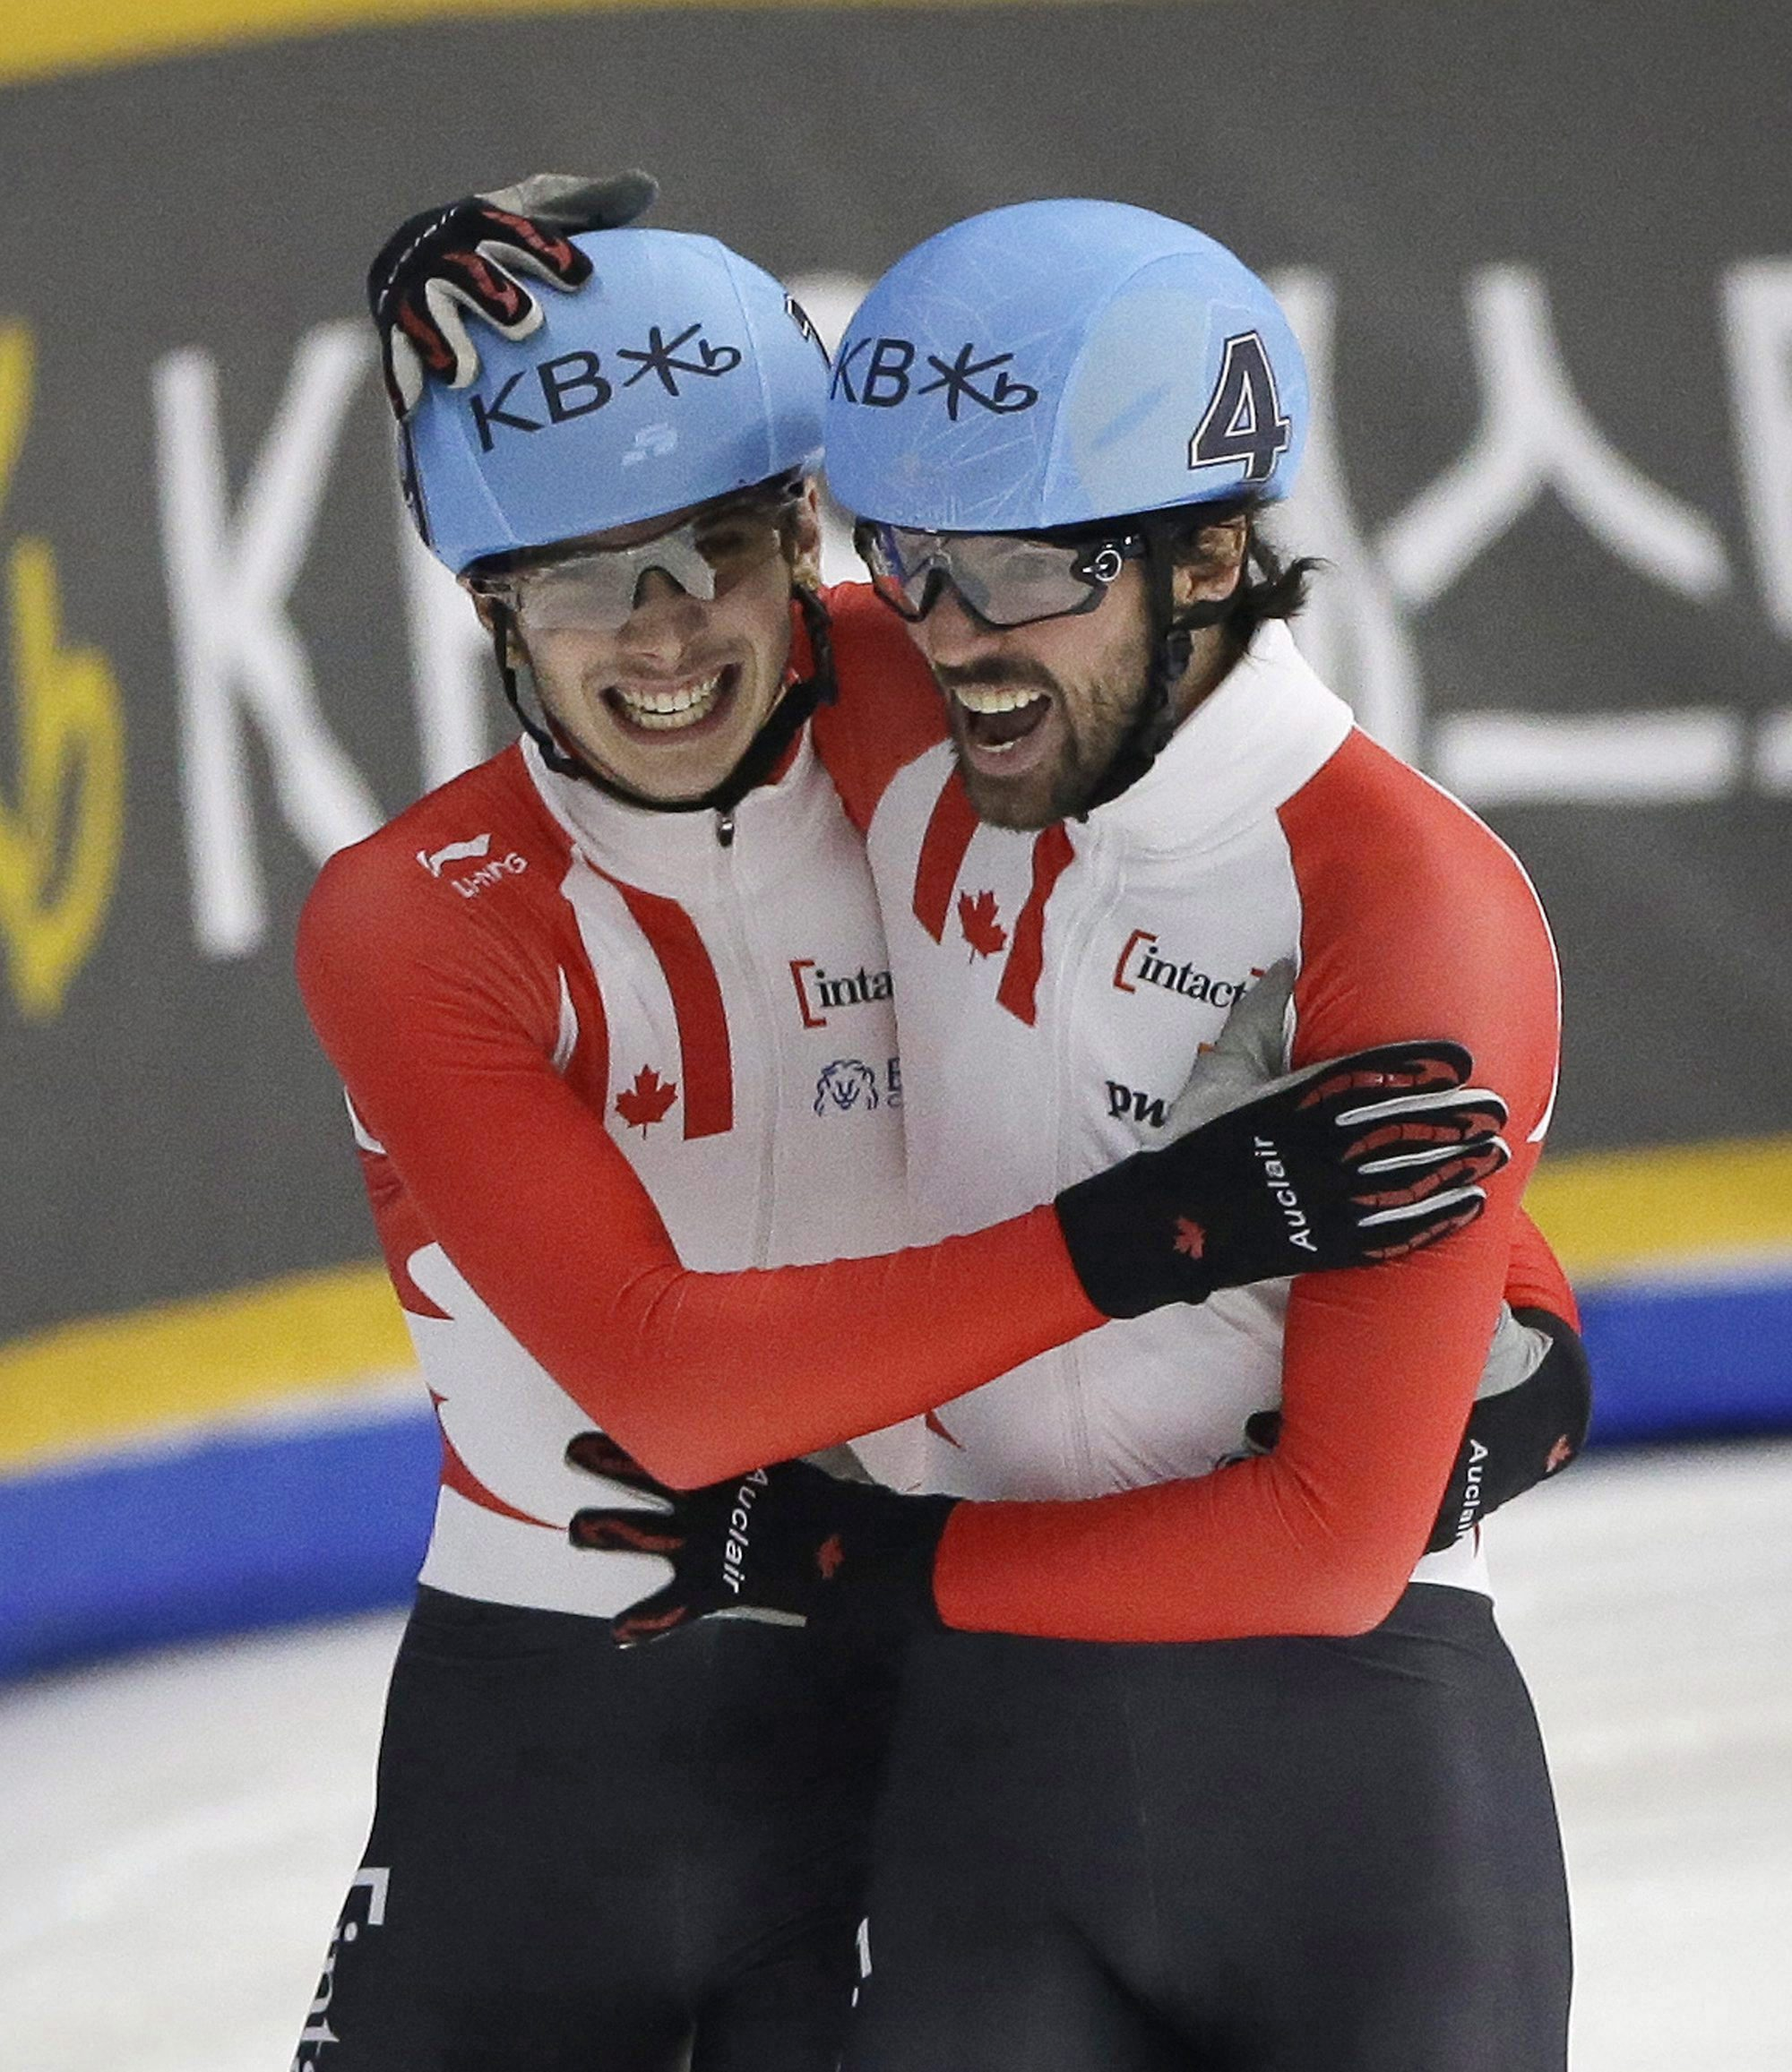 Charles Hamelin, right, and Samuel Girard of Canada celebrate after the men's 1000 meter final race at the ISU World Cup Short Track Speed Skating competition in Seoul, South Korea, Sunday, March 13, 2016. Hamelin won the race while Girard took second. (AP Photo/Ahn Young-joon)